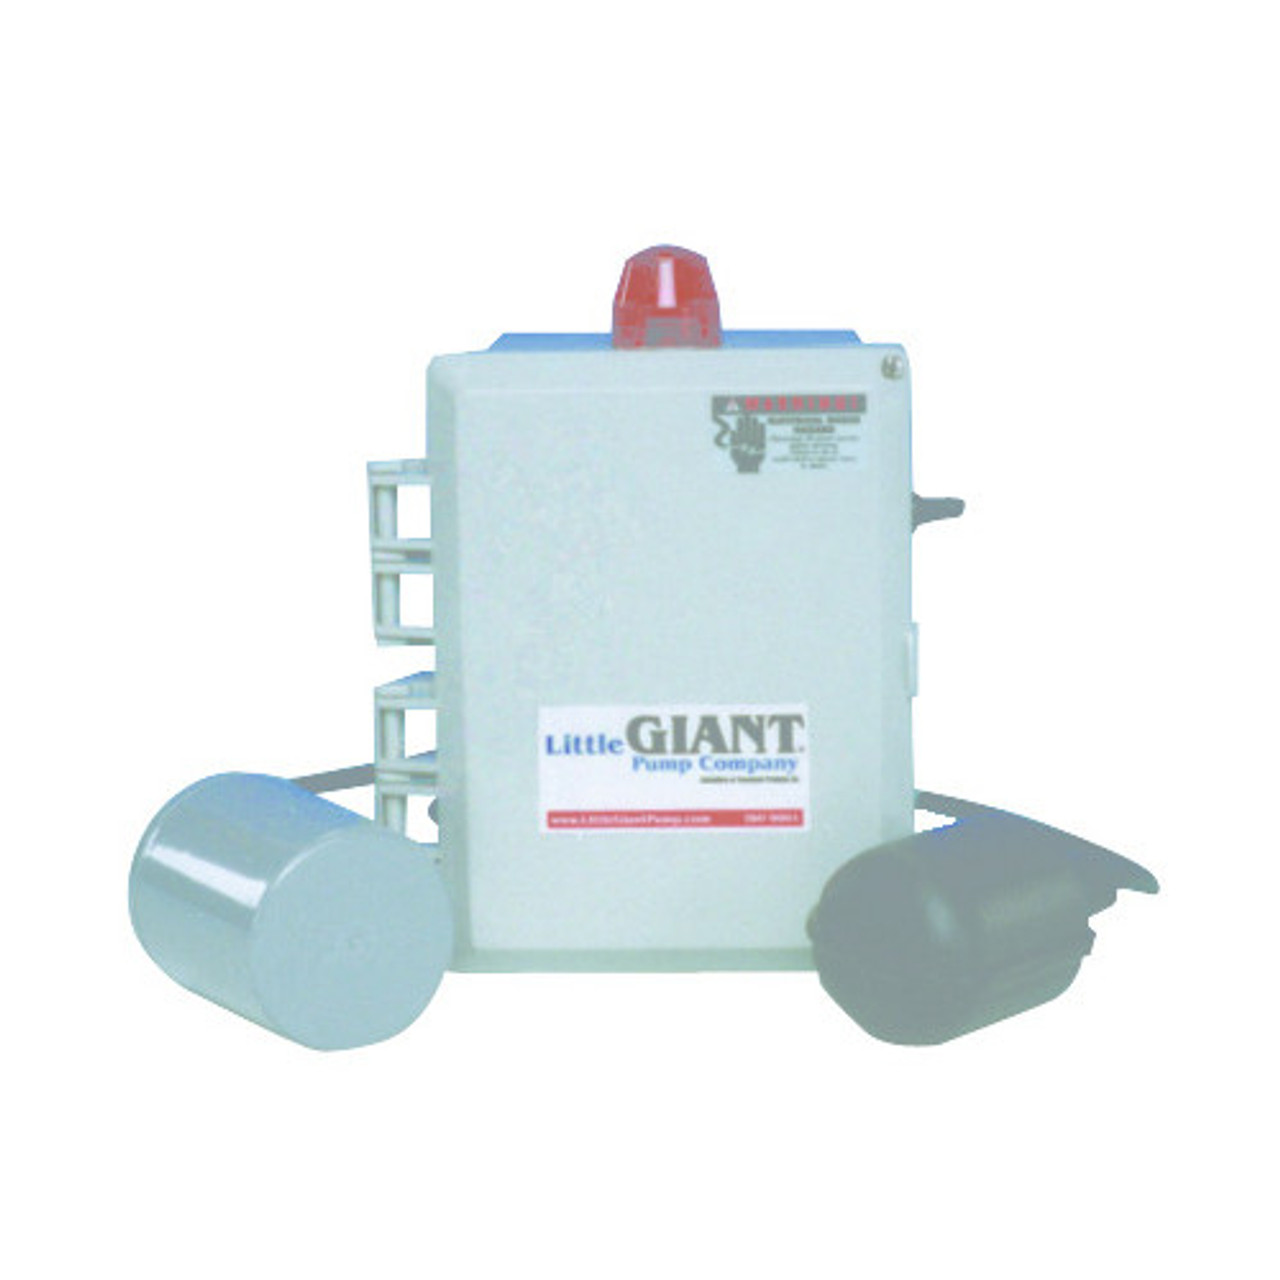 hight resolution of little giant 513267 single phase simplex indoor outdoor alarm system pump control